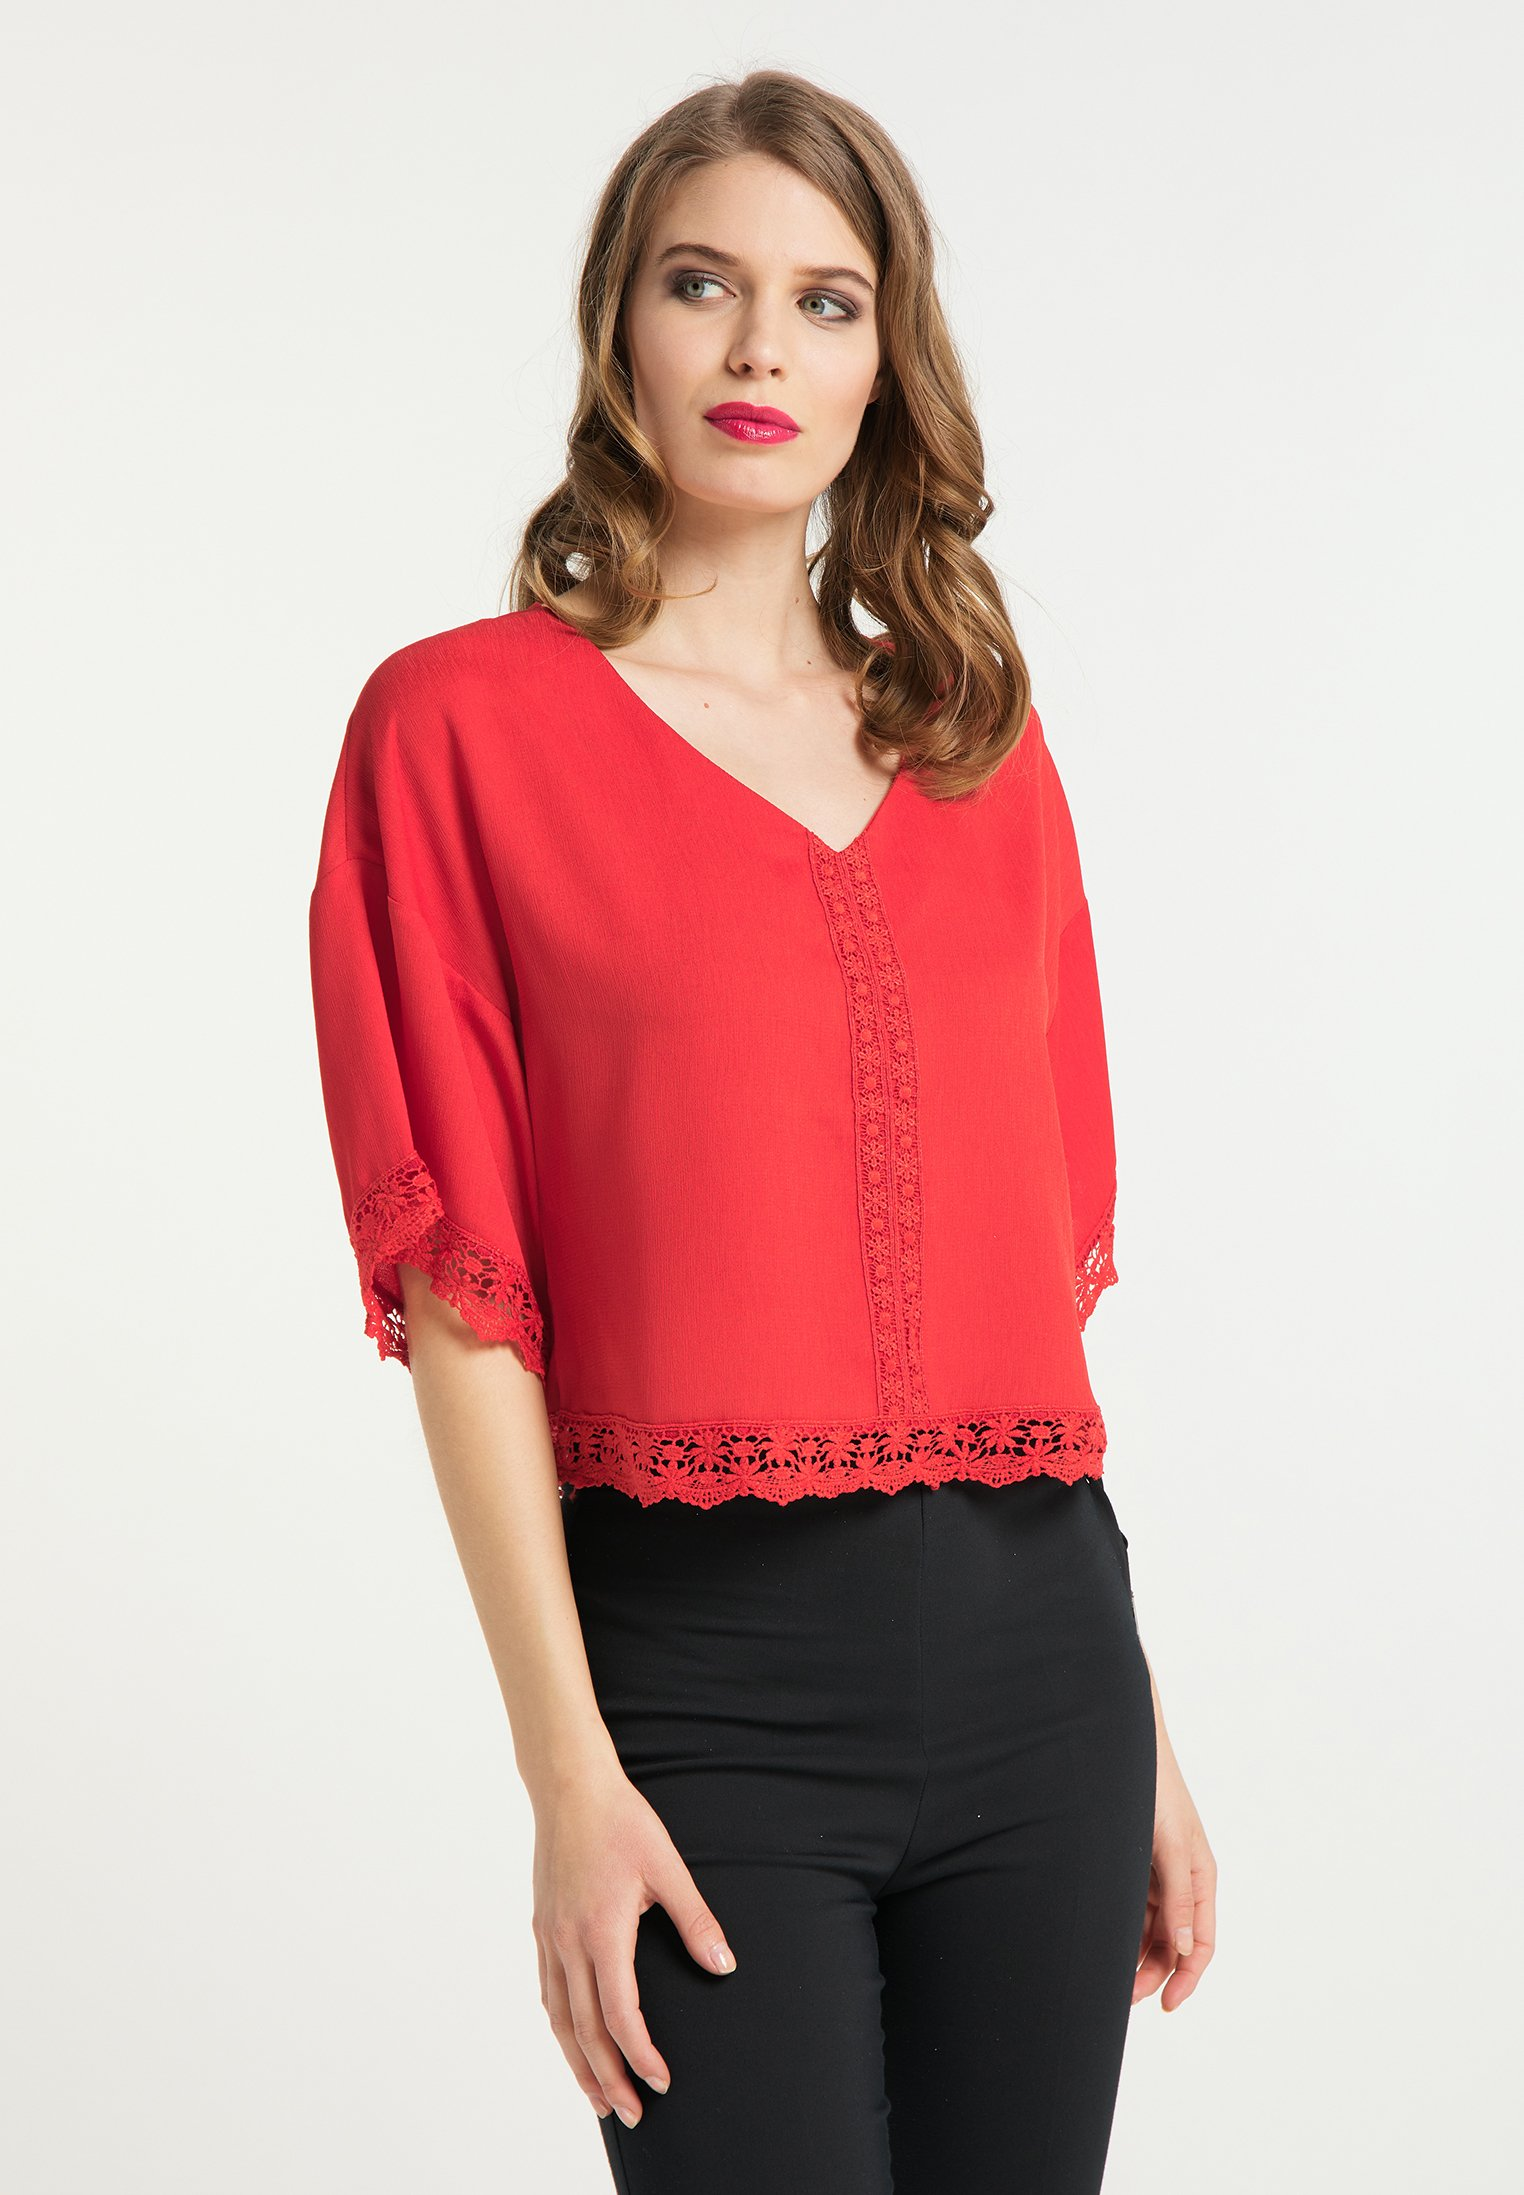 Latest Collections Women's Clothing faina Blouse rot OOgoguexm